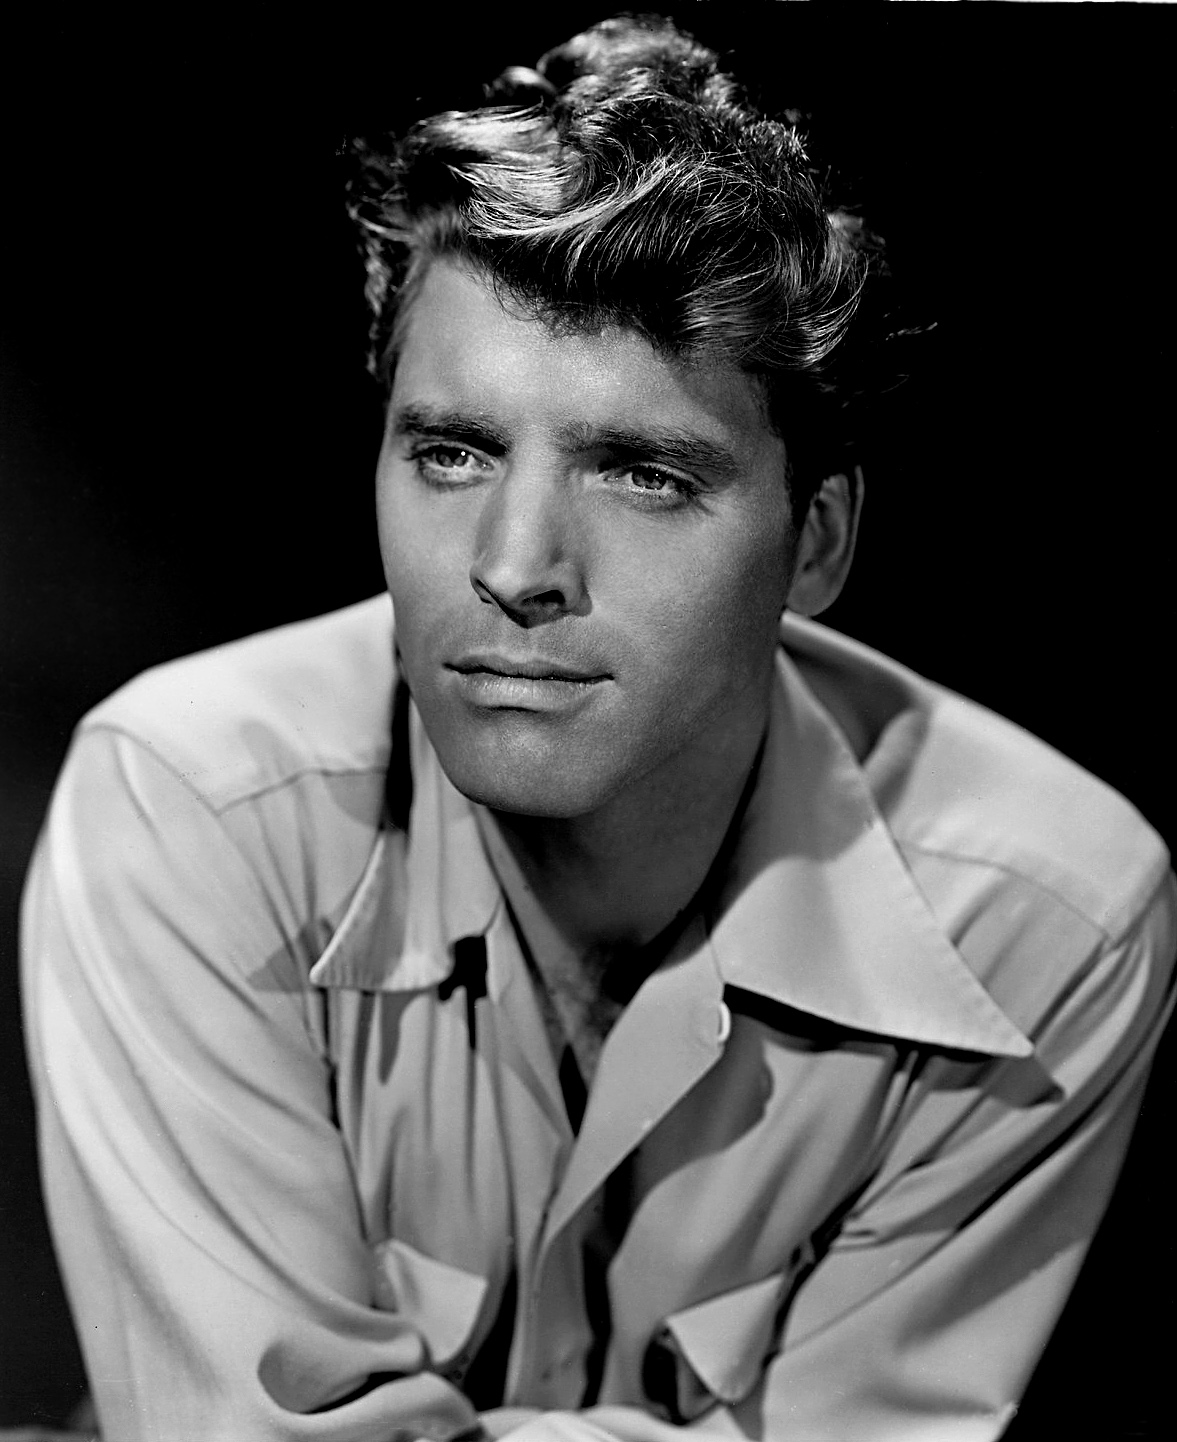 burt lancaster kirk douglasburt lancaster kirk douglas, burt lancaster films, burt lancaster net worth, burt lancaster unknown war, burt lancaster imdb, burt lancaster filme, burt lancaster movies, burt lancaster swimmer, burt lancaster rotten tomatoes, burt lancaster filmweb, burt lancaster, burt lancaster actor, burt lancaster filmography, burt lancaster height, burt lancaster the train, burt lancaster western movies, burt lancaster trapeze., burt lancaster and deborah kerr, burt lancaster westerns, burt lancaster interview